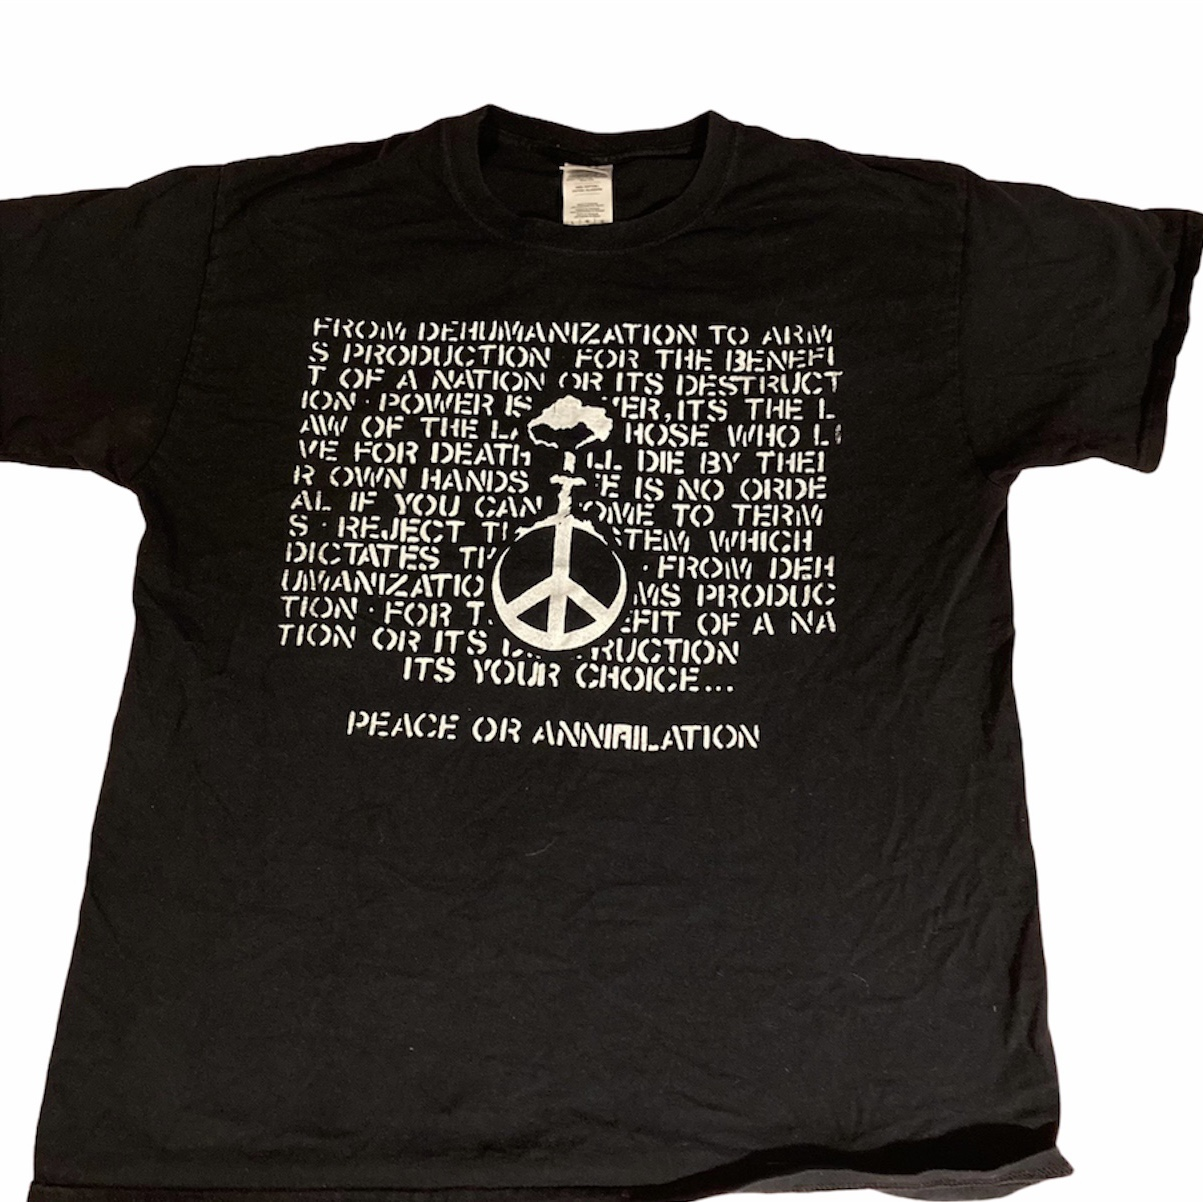 Product Image 1 - Crucifix! Nicely worn unofficial shirt